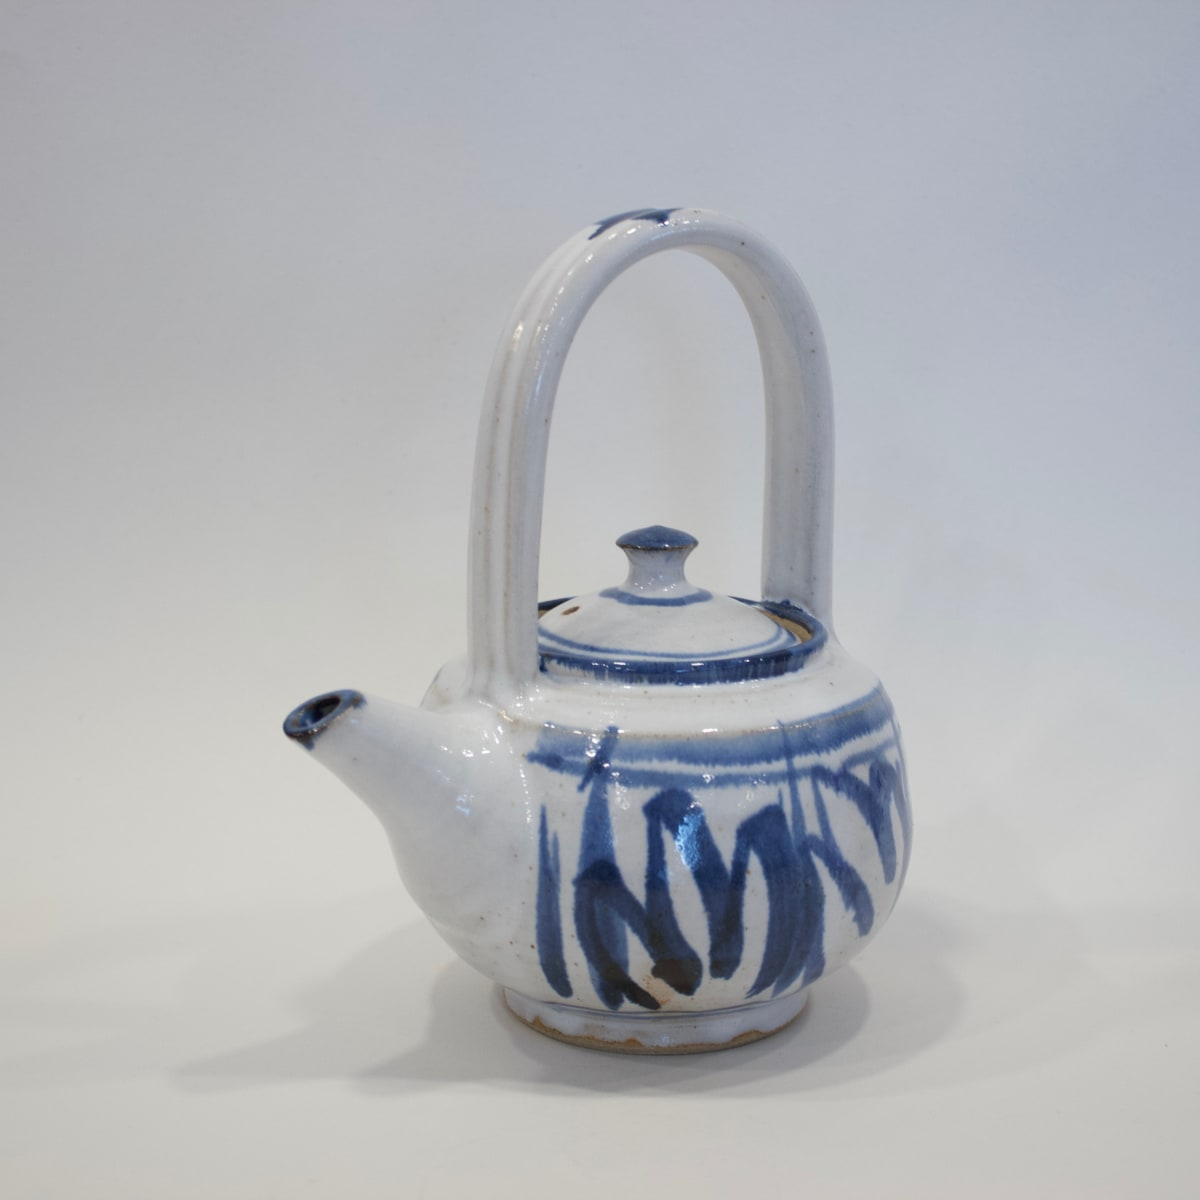 Robyn Cove Painted Teapot, 2019 Stoneware 22 x 18 x 14 cm 8 5/8 x 7 1/8 x 5 1/2 in